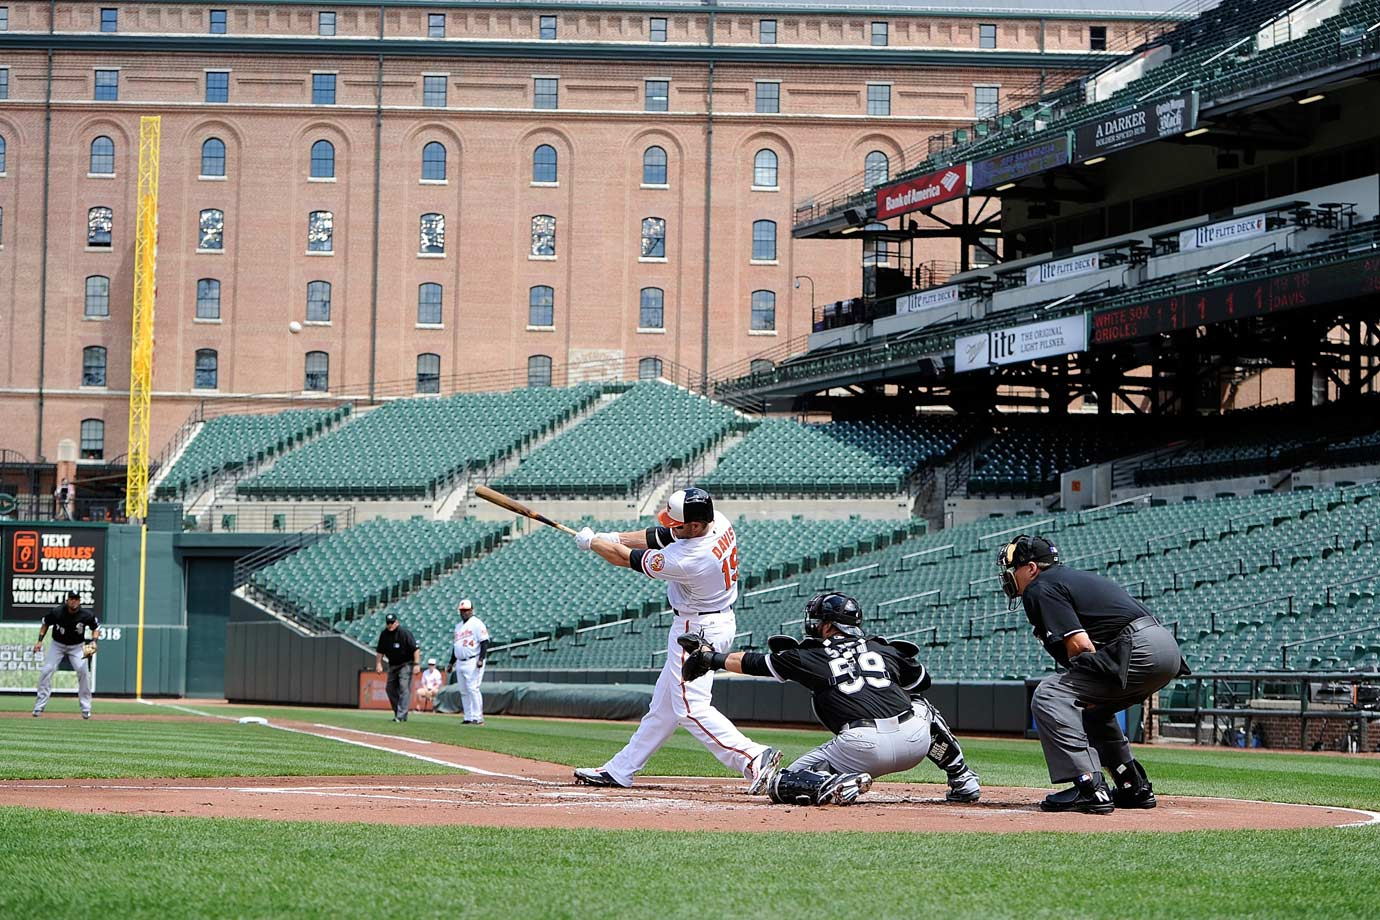 Scenes from the Closed-Door Game at Camden Yards & Scenes from the Closed Door Game at Camden Yards | SI.com